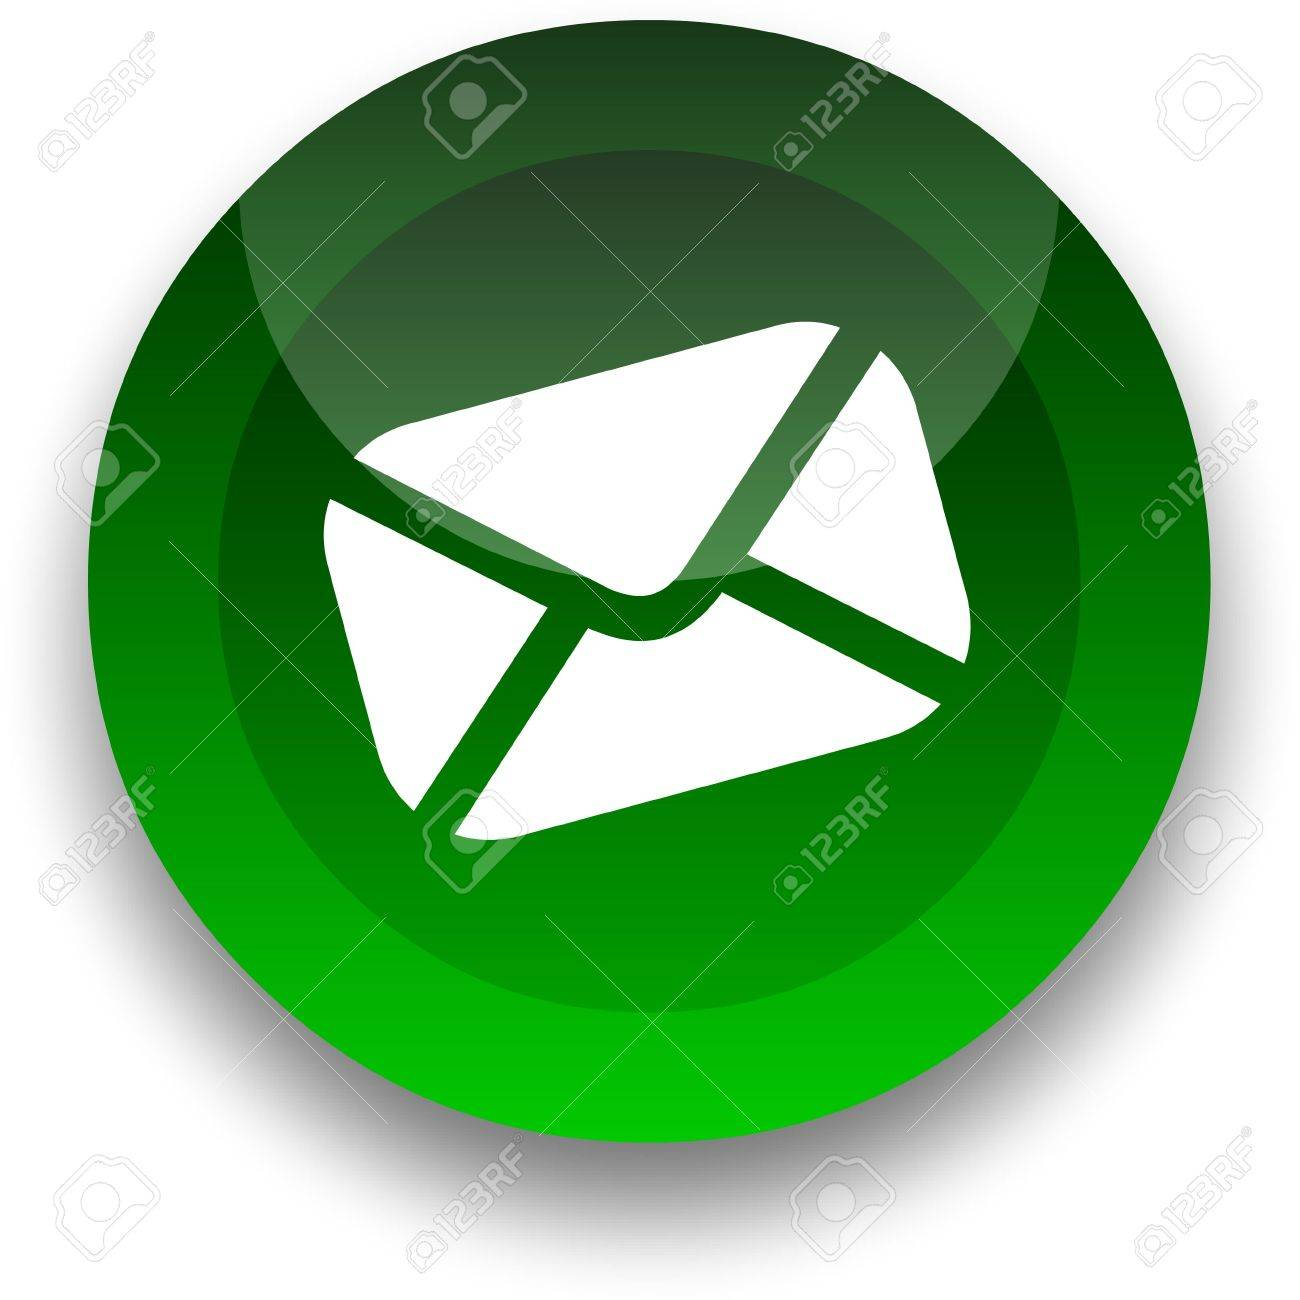 Email icon for use as a contact button Stock Photo - 3538777